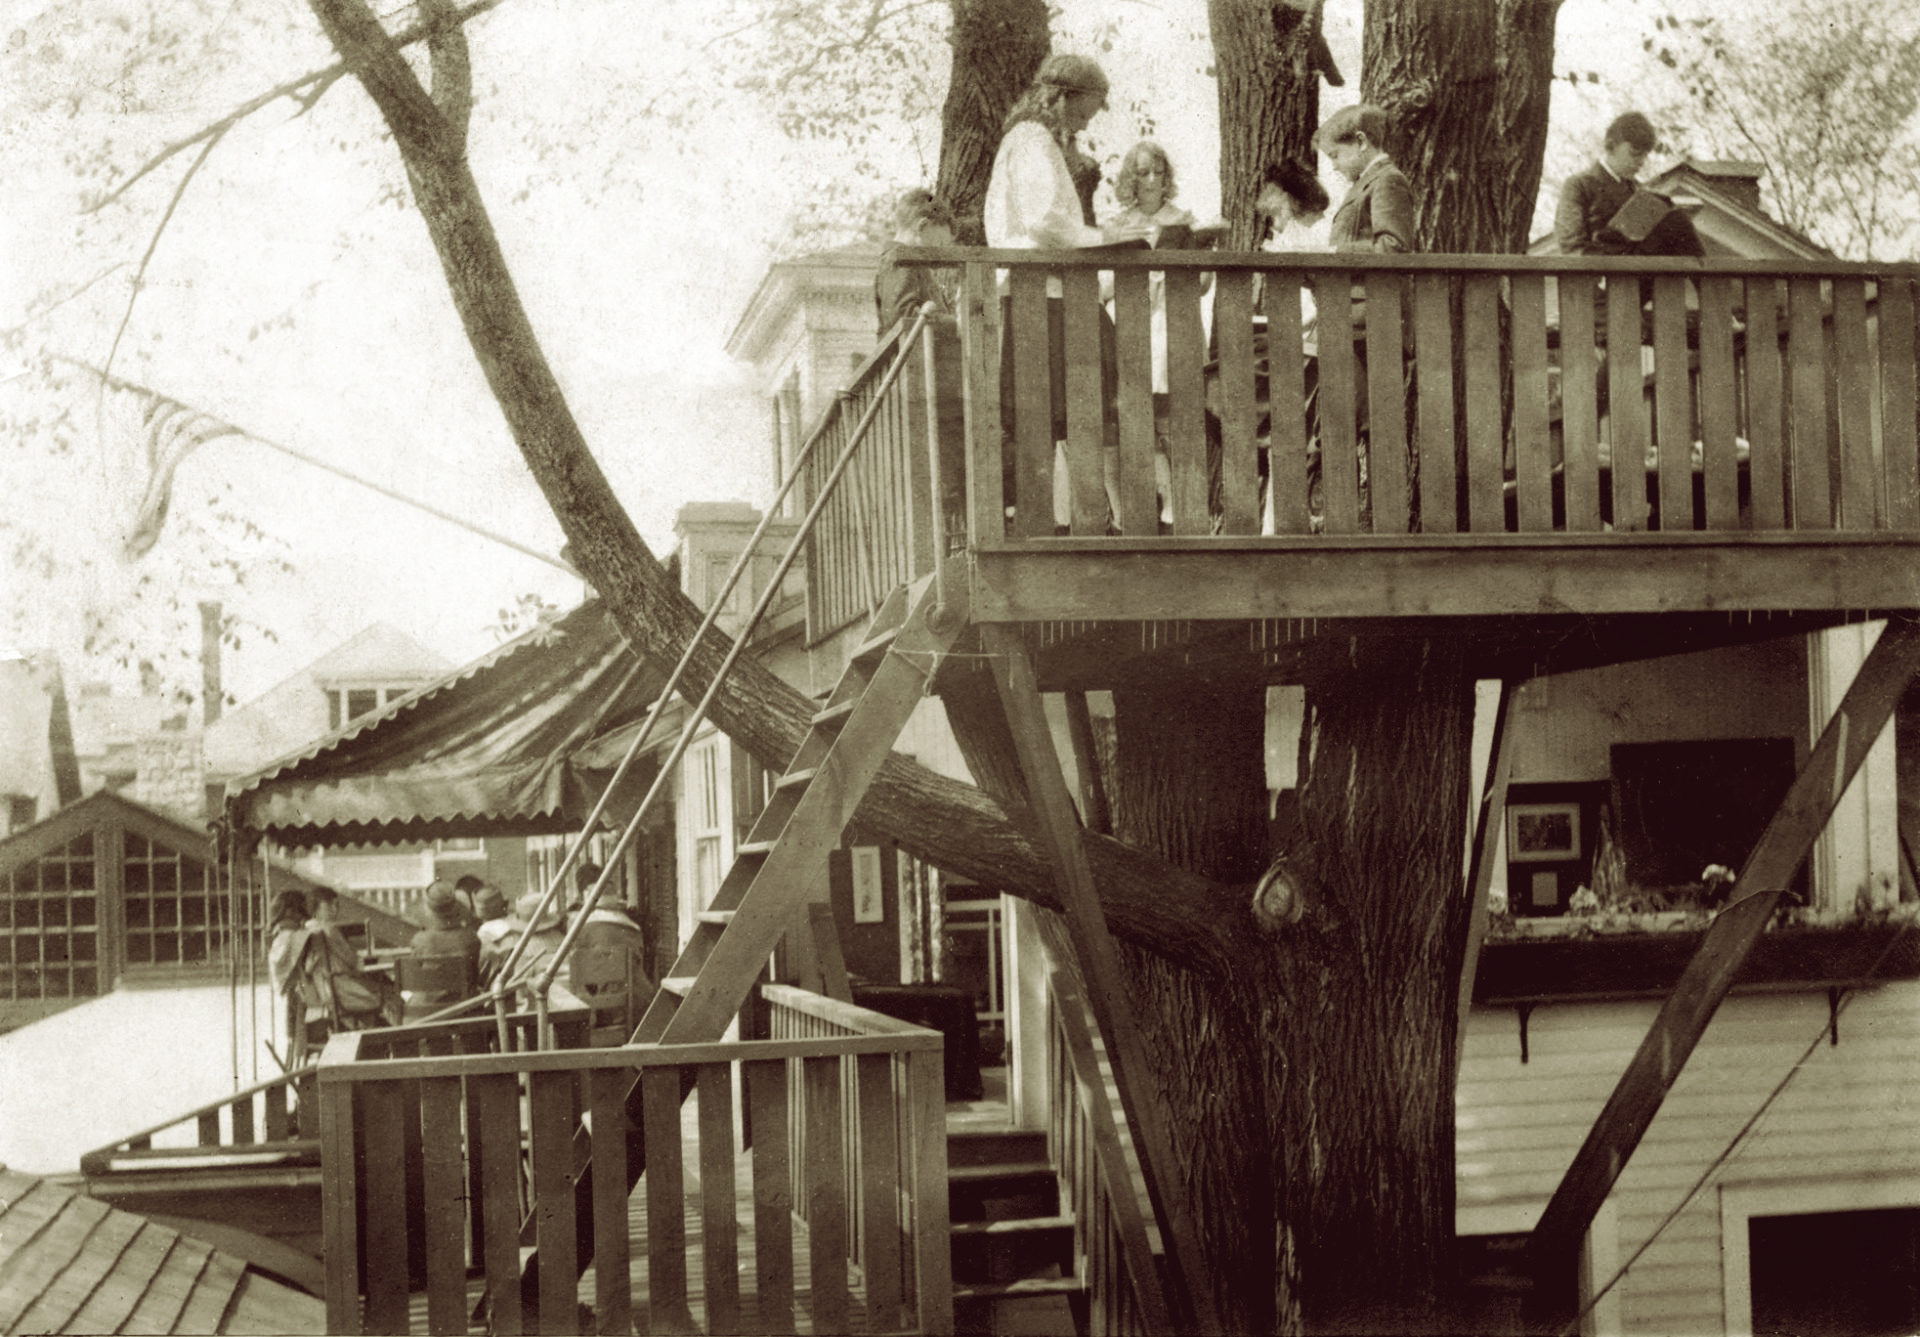 The one-and-a-half acre Jewett Parkway campus featured a tree house that was used as an outdoor classroom. (c. 1913)